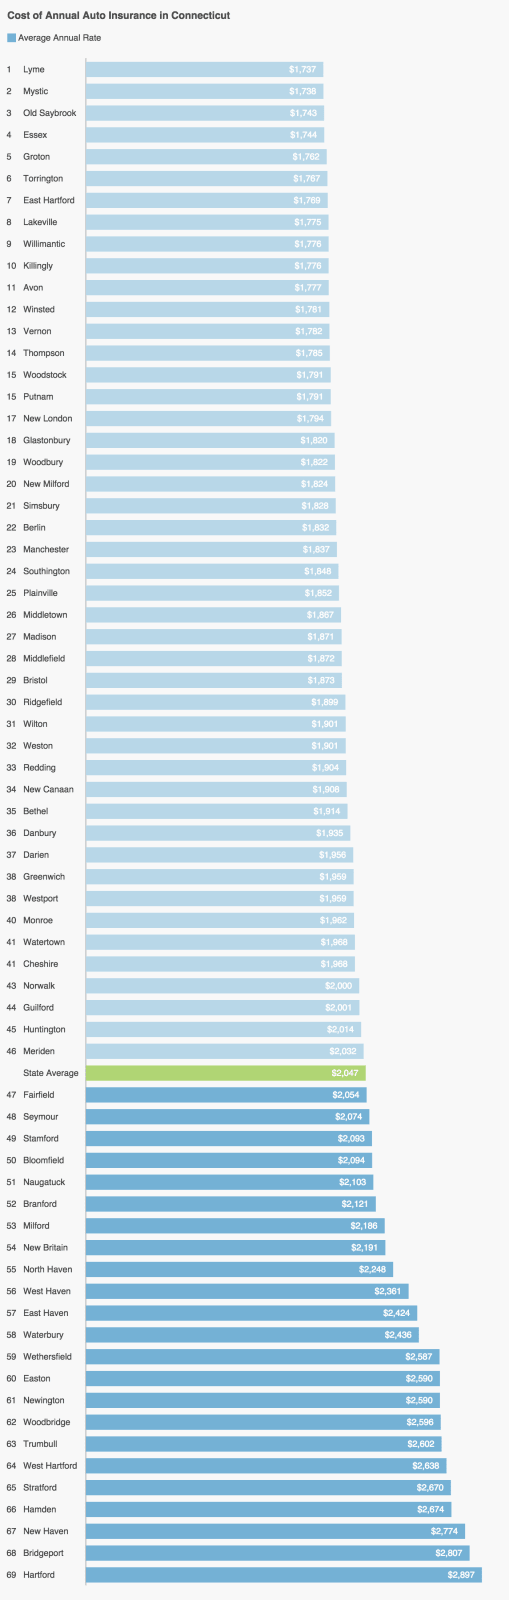 A list of 69 places in Connecticut ranked in the order of cheapest to most expensive cost to buy a year of auto insurance coverage.